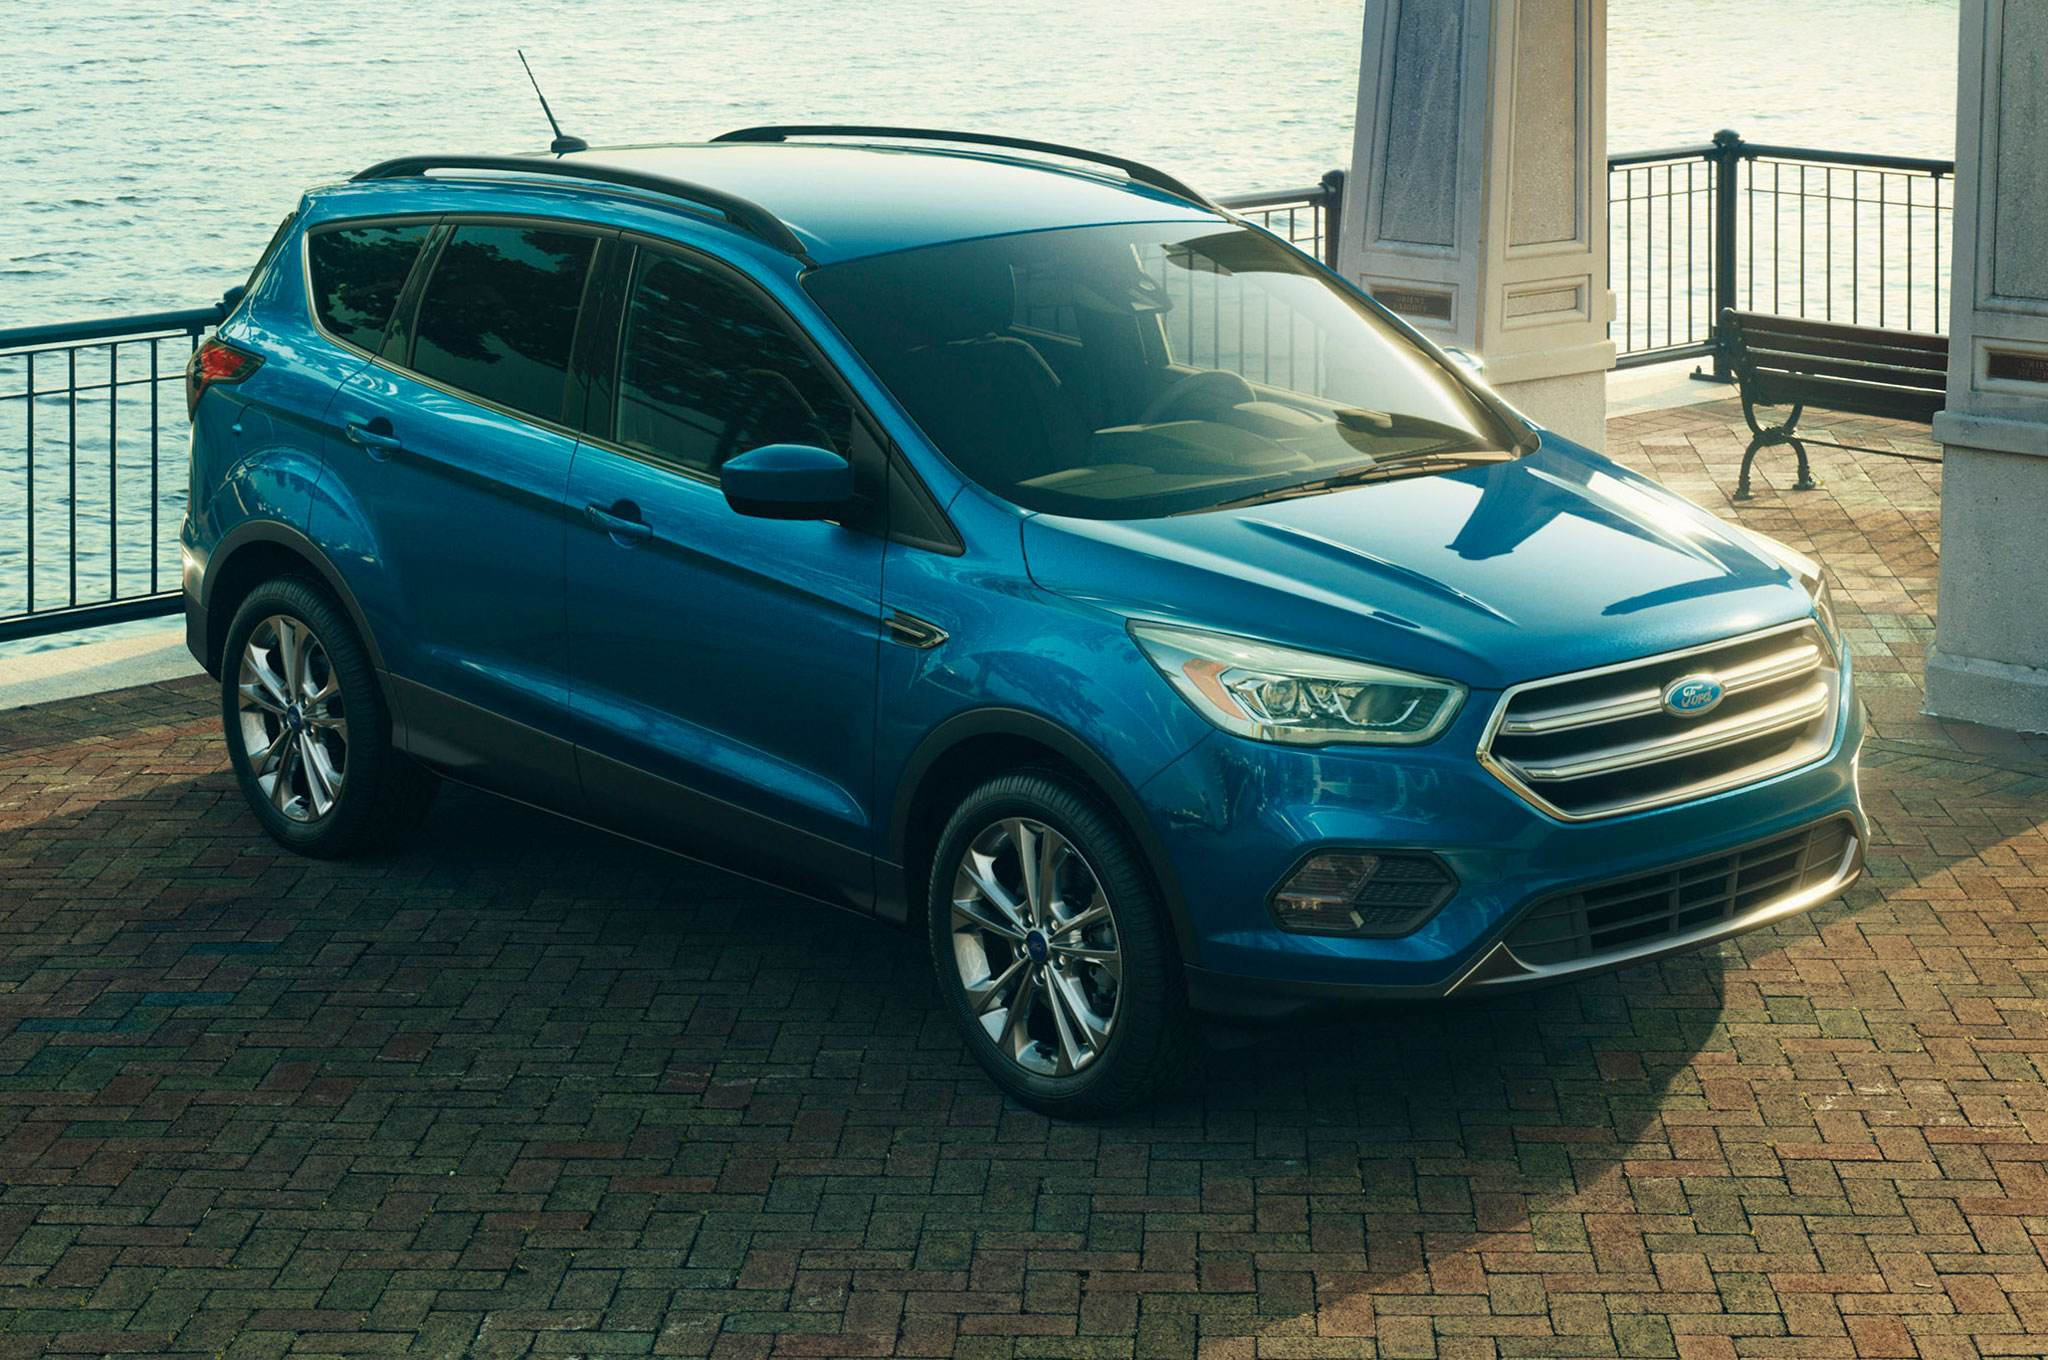 2017-Ford-Escape-Titanium-front-side-view-parked